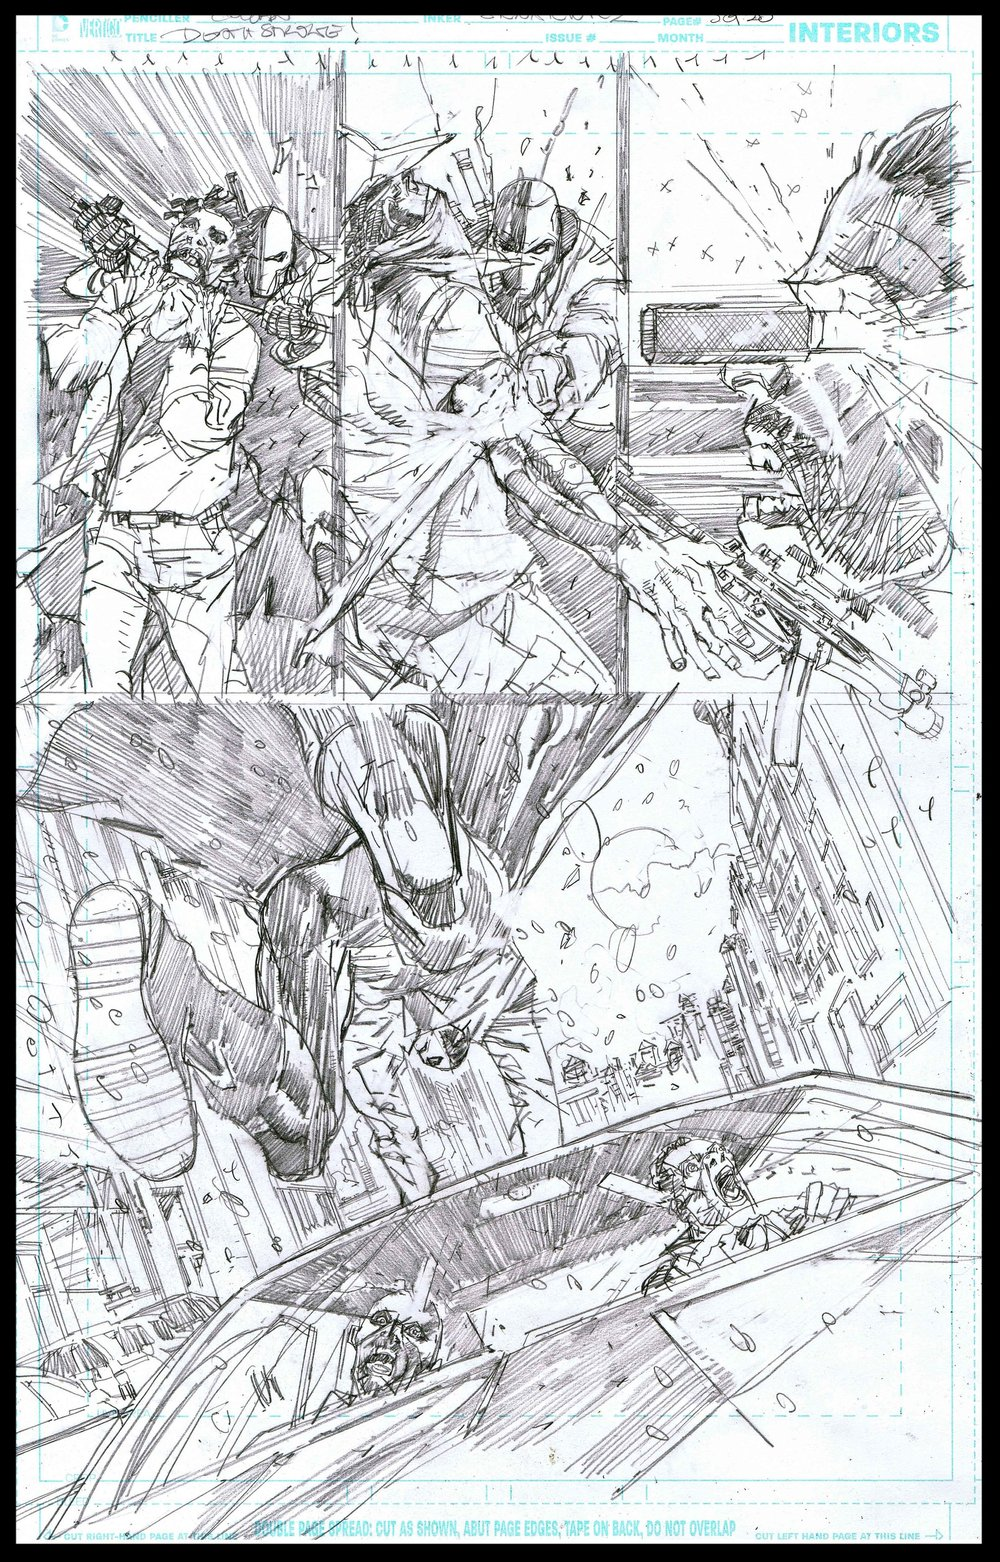 Deathstroke #11 - Page 5 - Pencils